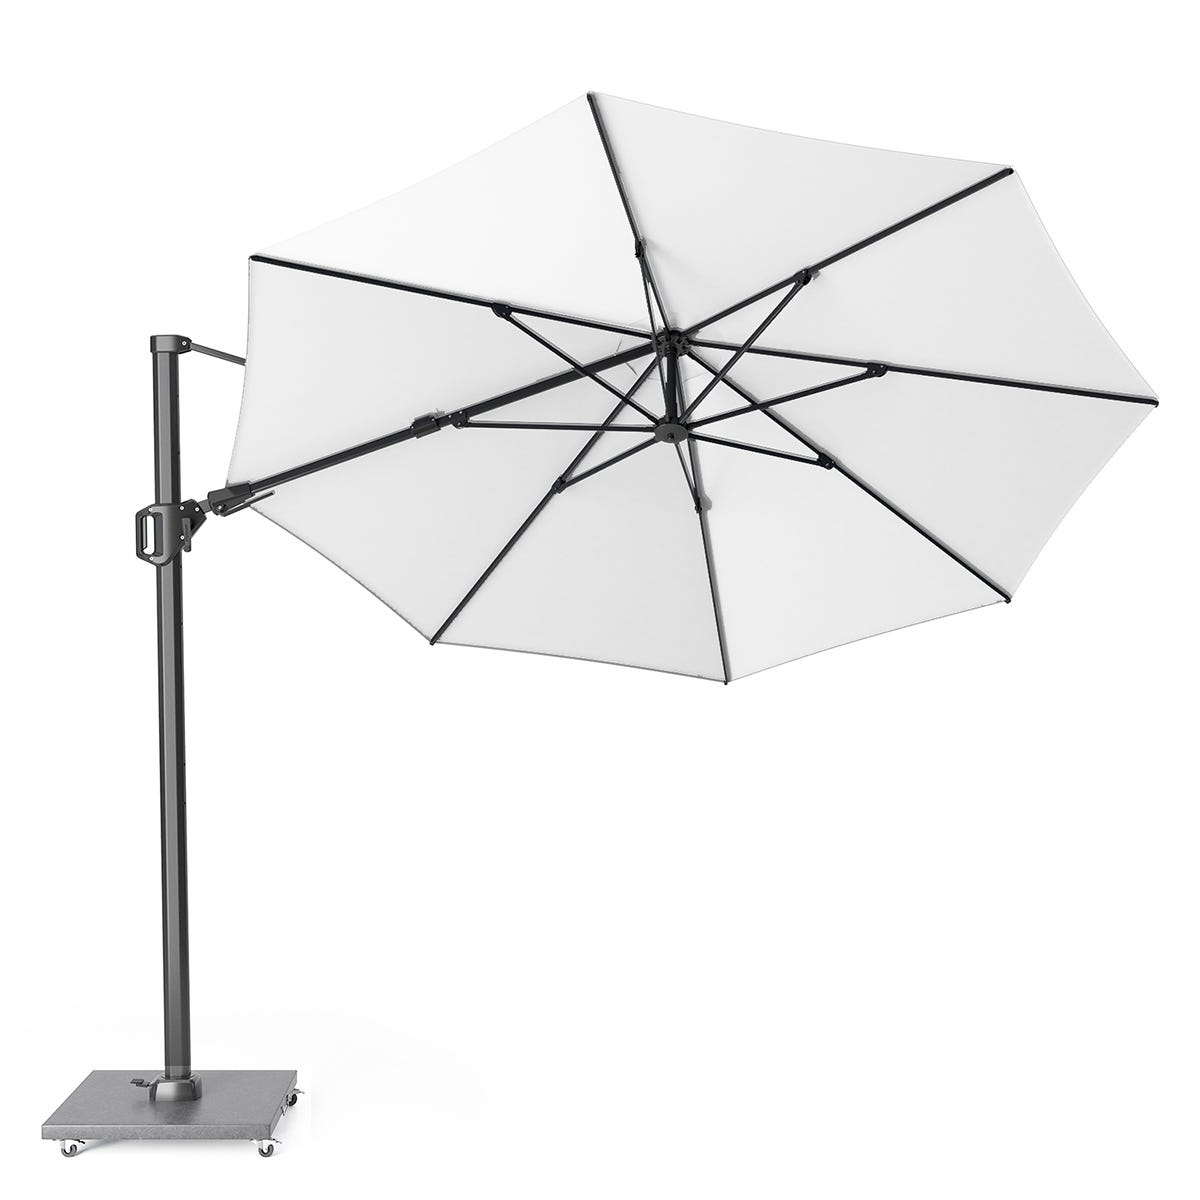 Pacific Lifestyle Challenger T2 3.5m Round Ivory Parasol with Hammered Grey Granite 90kg Wheeled Base